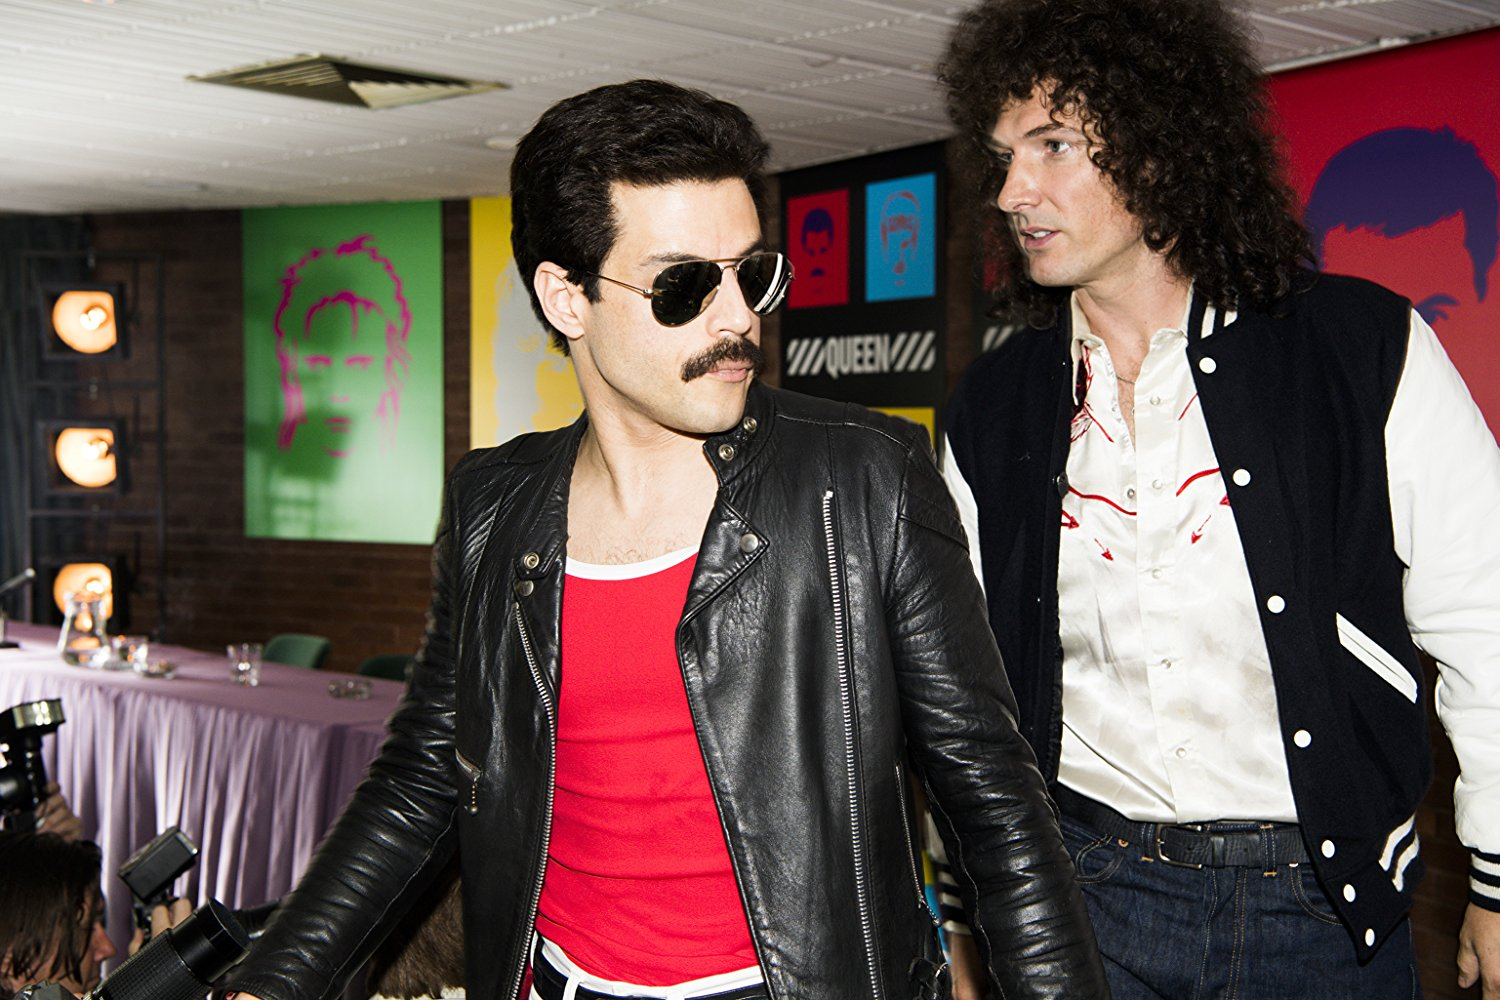 Bohemian Rhapsody's First Trailer Debuts And Draws Heavy Debate On Mercury's Portrayal